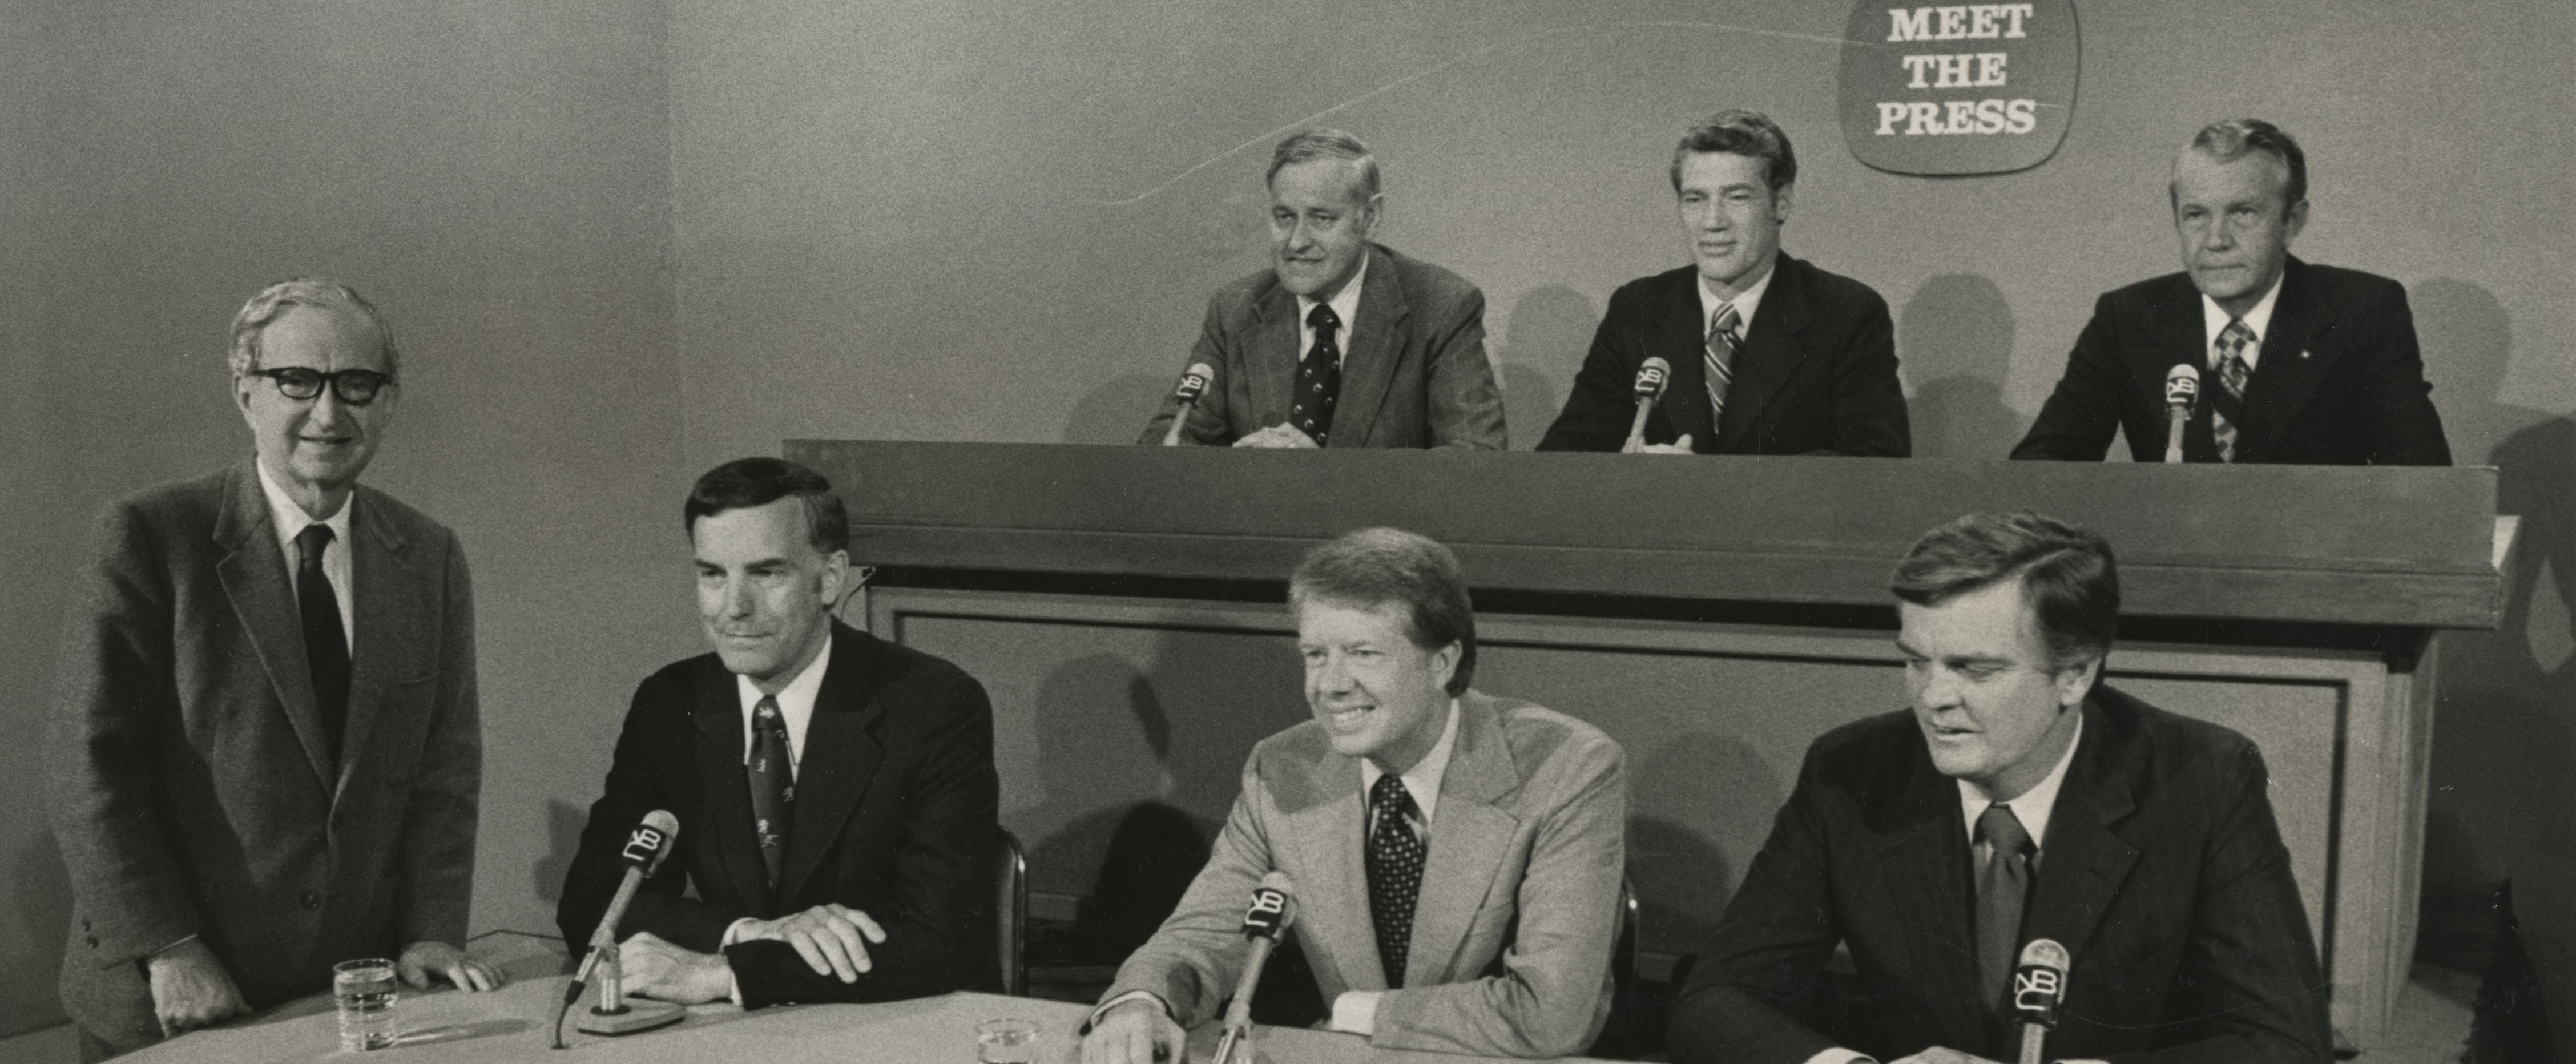 McCall on Meet the Press, 1974, to talk about Watergate